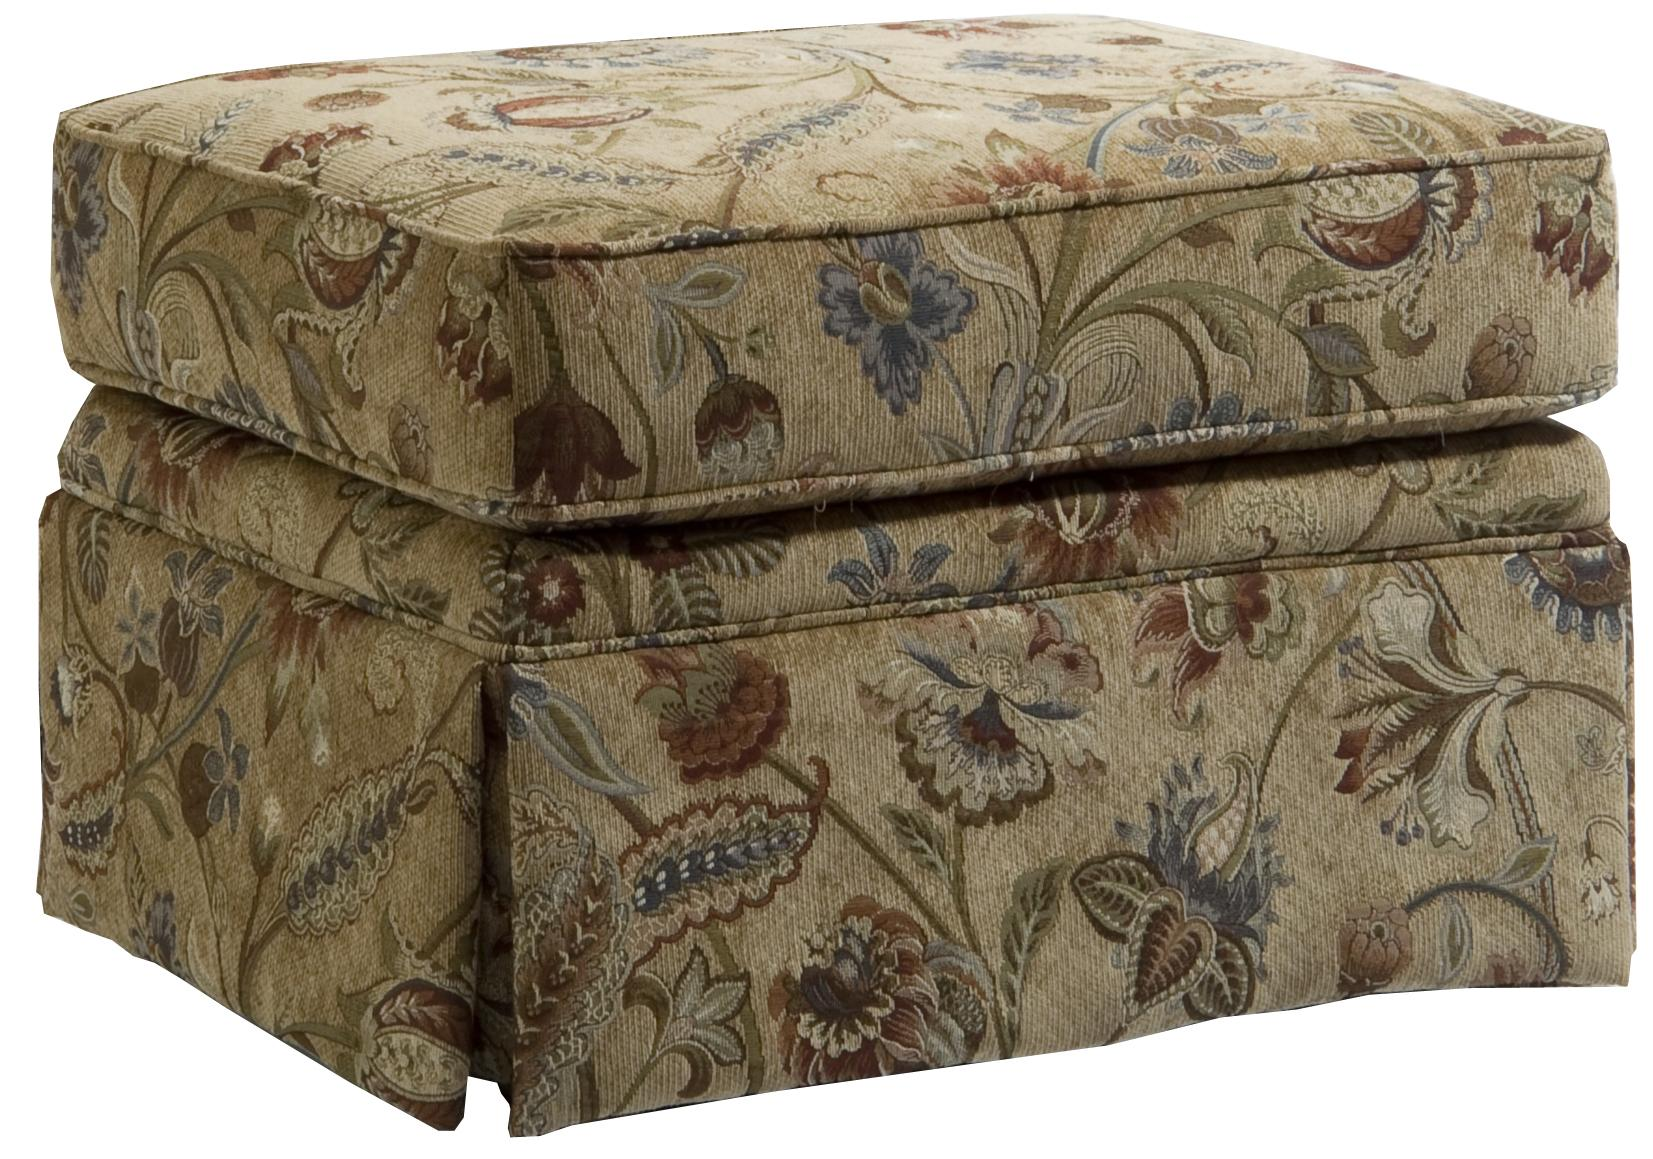 Surprising Broyhill Furniture Audrey Ottoman With Skirt Fmg Local Dailytribune Chair Design For Home Dailytribuneorg